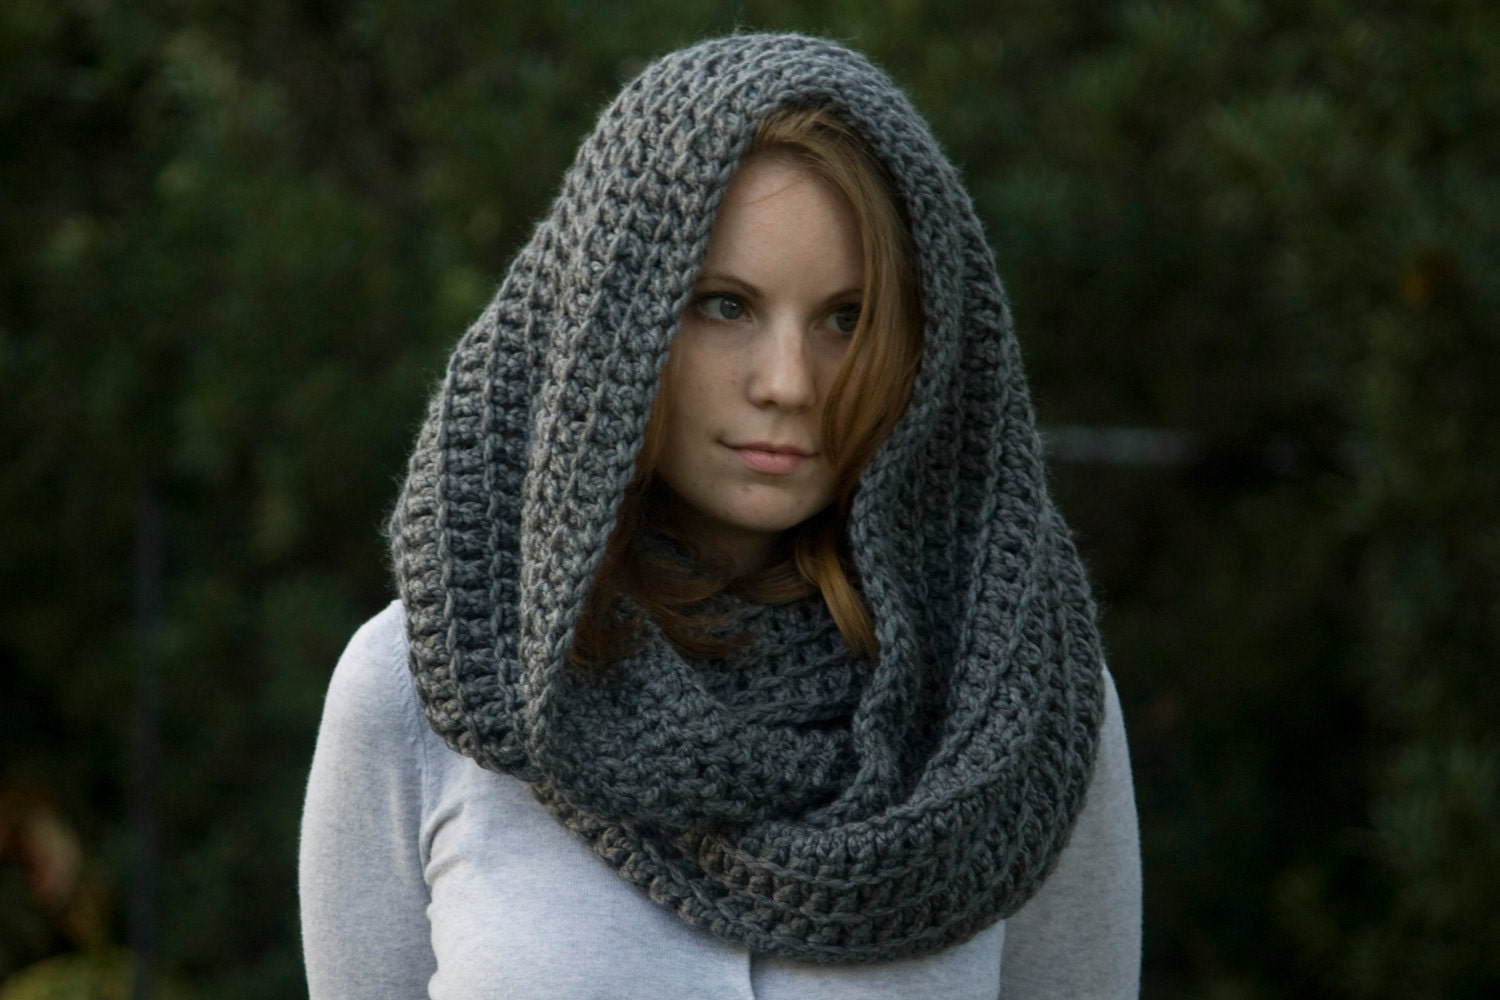 Crochet Patterns Free Hooded Scarf : CROCHET PATTERN Oversized Hooded Infinity Scarf Cowl